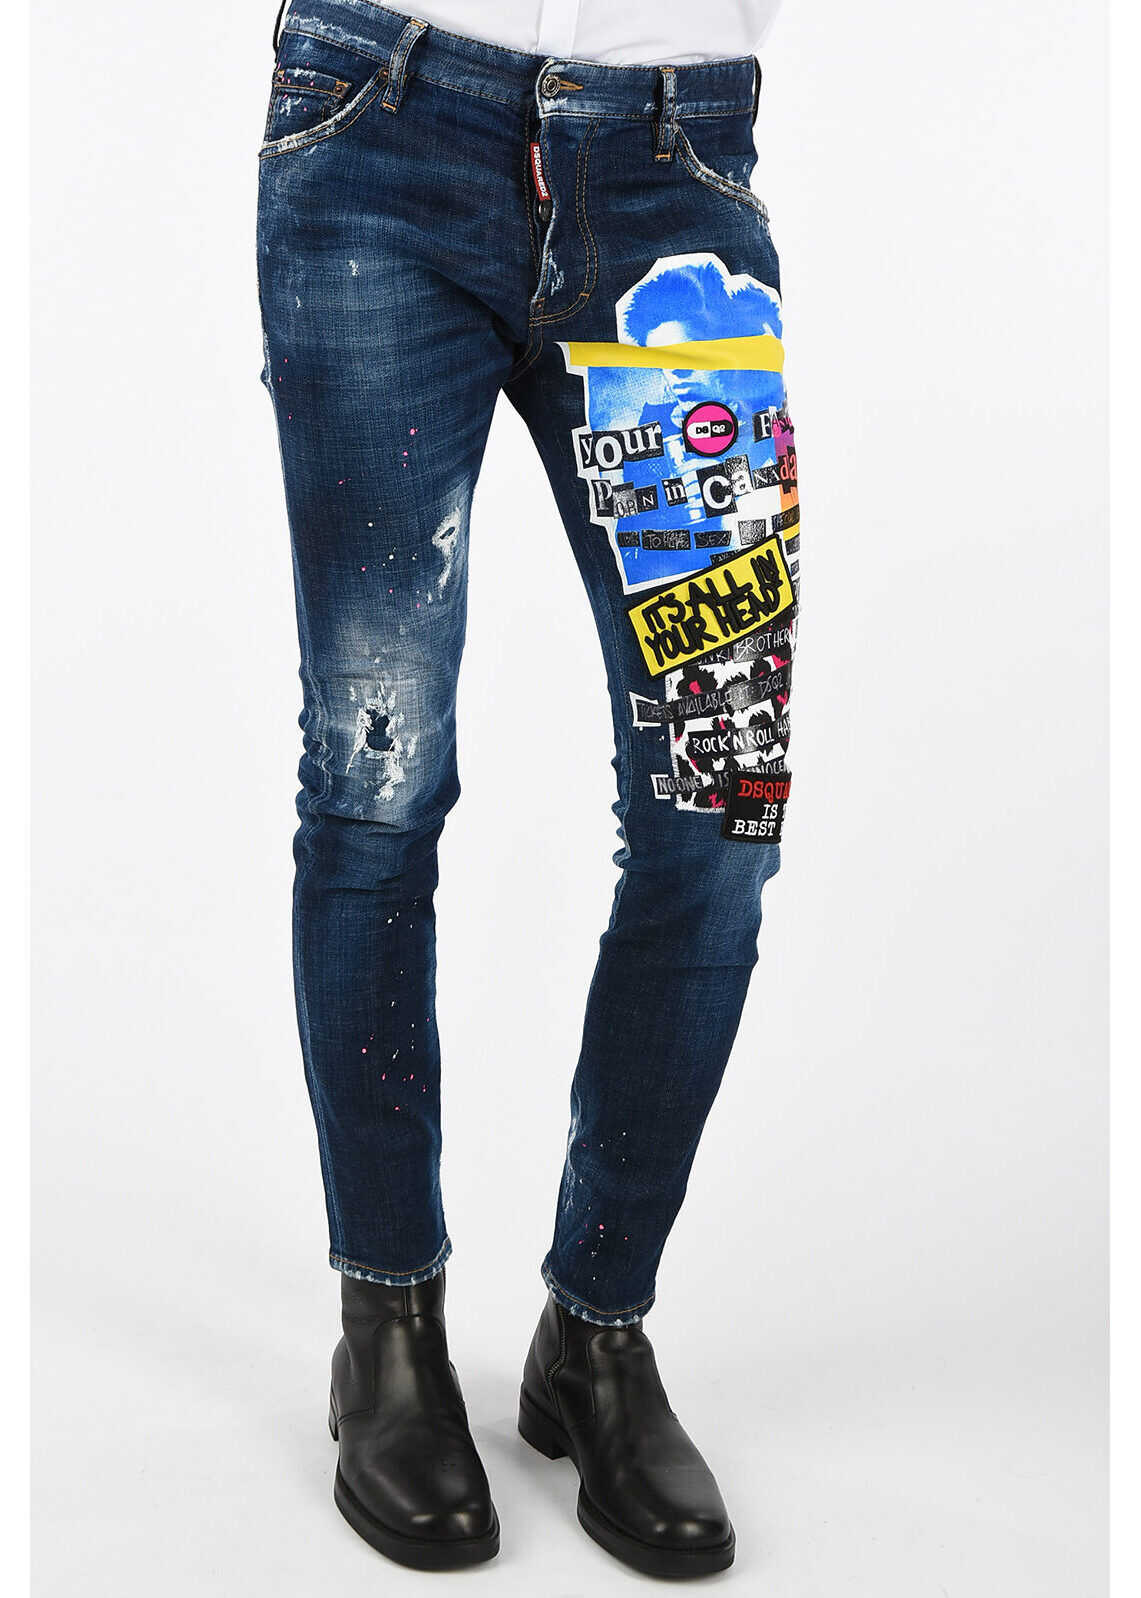 16cm Embroidered COOL GUY Jeans thumbnail